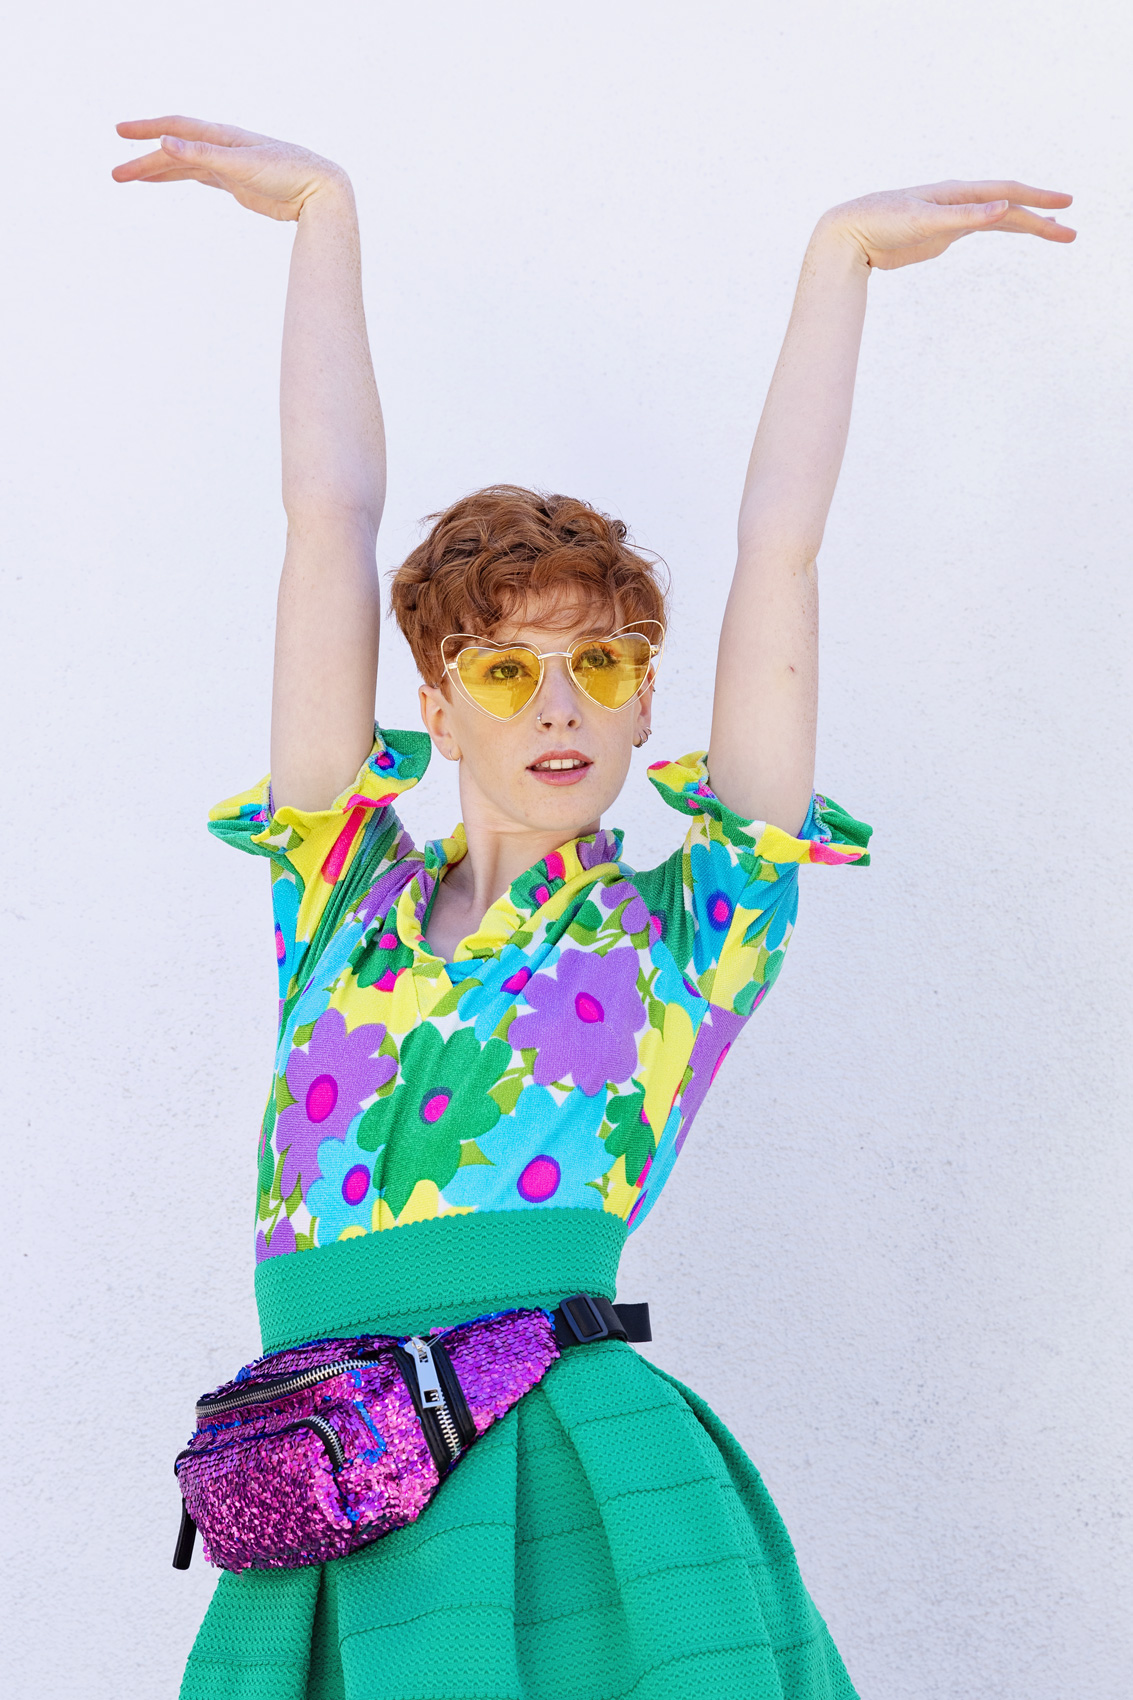 LGBTQ youth wearing a floral shirt and yellow sunglasses - Kim Genevieve Los Angeles Lifestyle Photographer